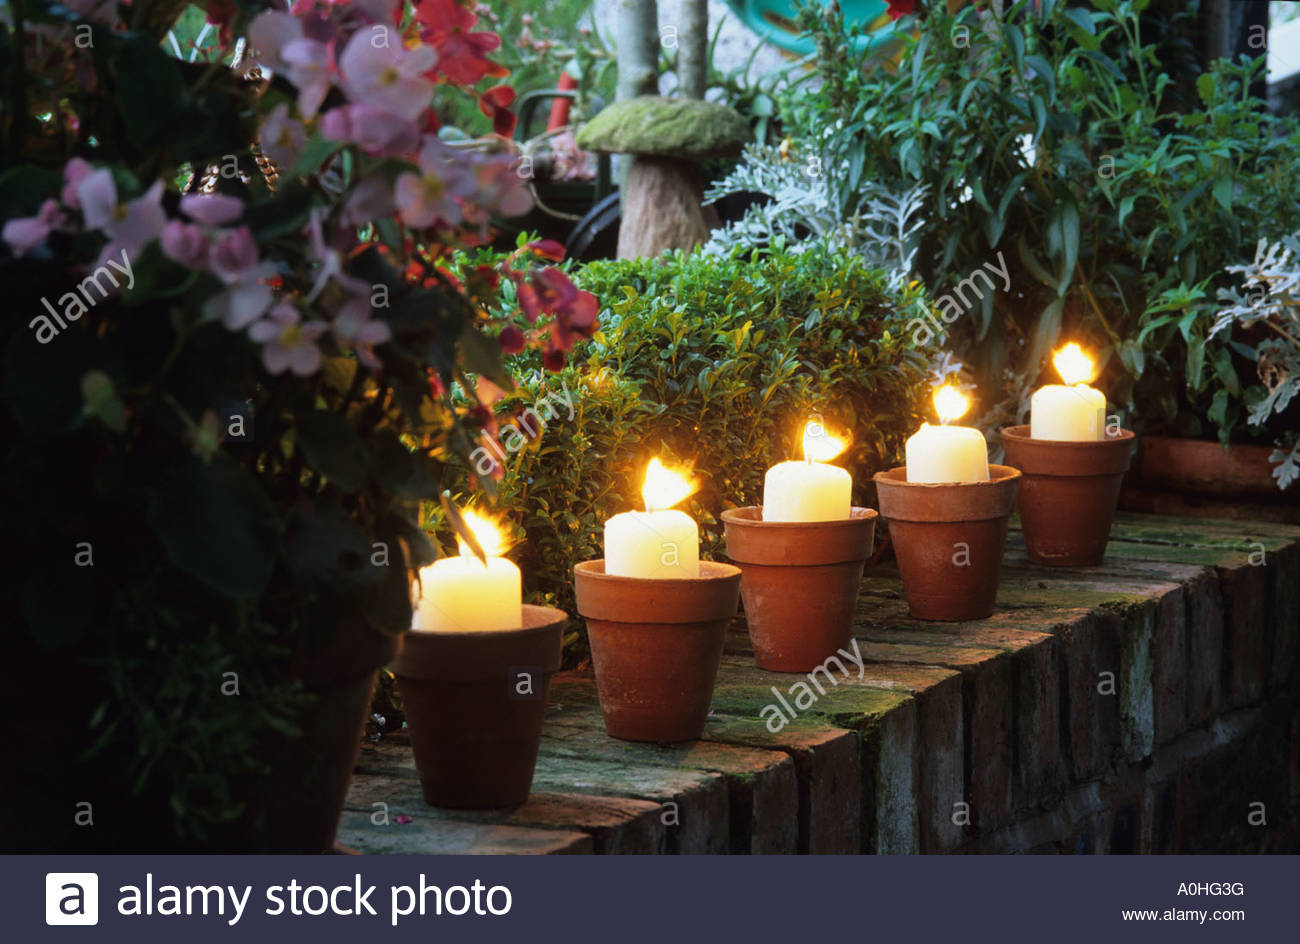 woodside rd  chester  garden lighting  candles in pots on